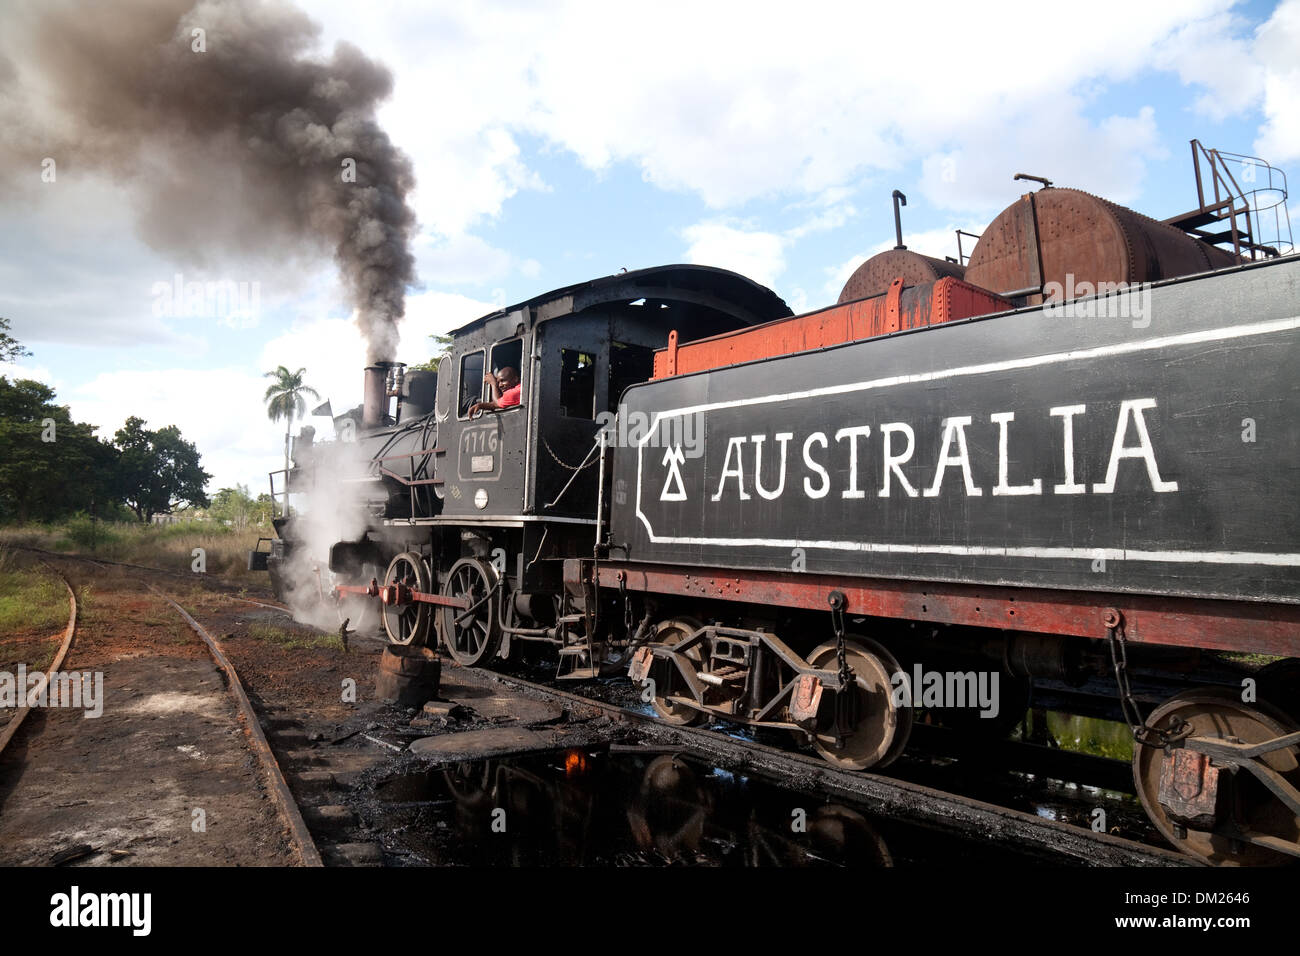 Working steam engine, in a village called Australia, Cuba, Caribbean - Stock Image